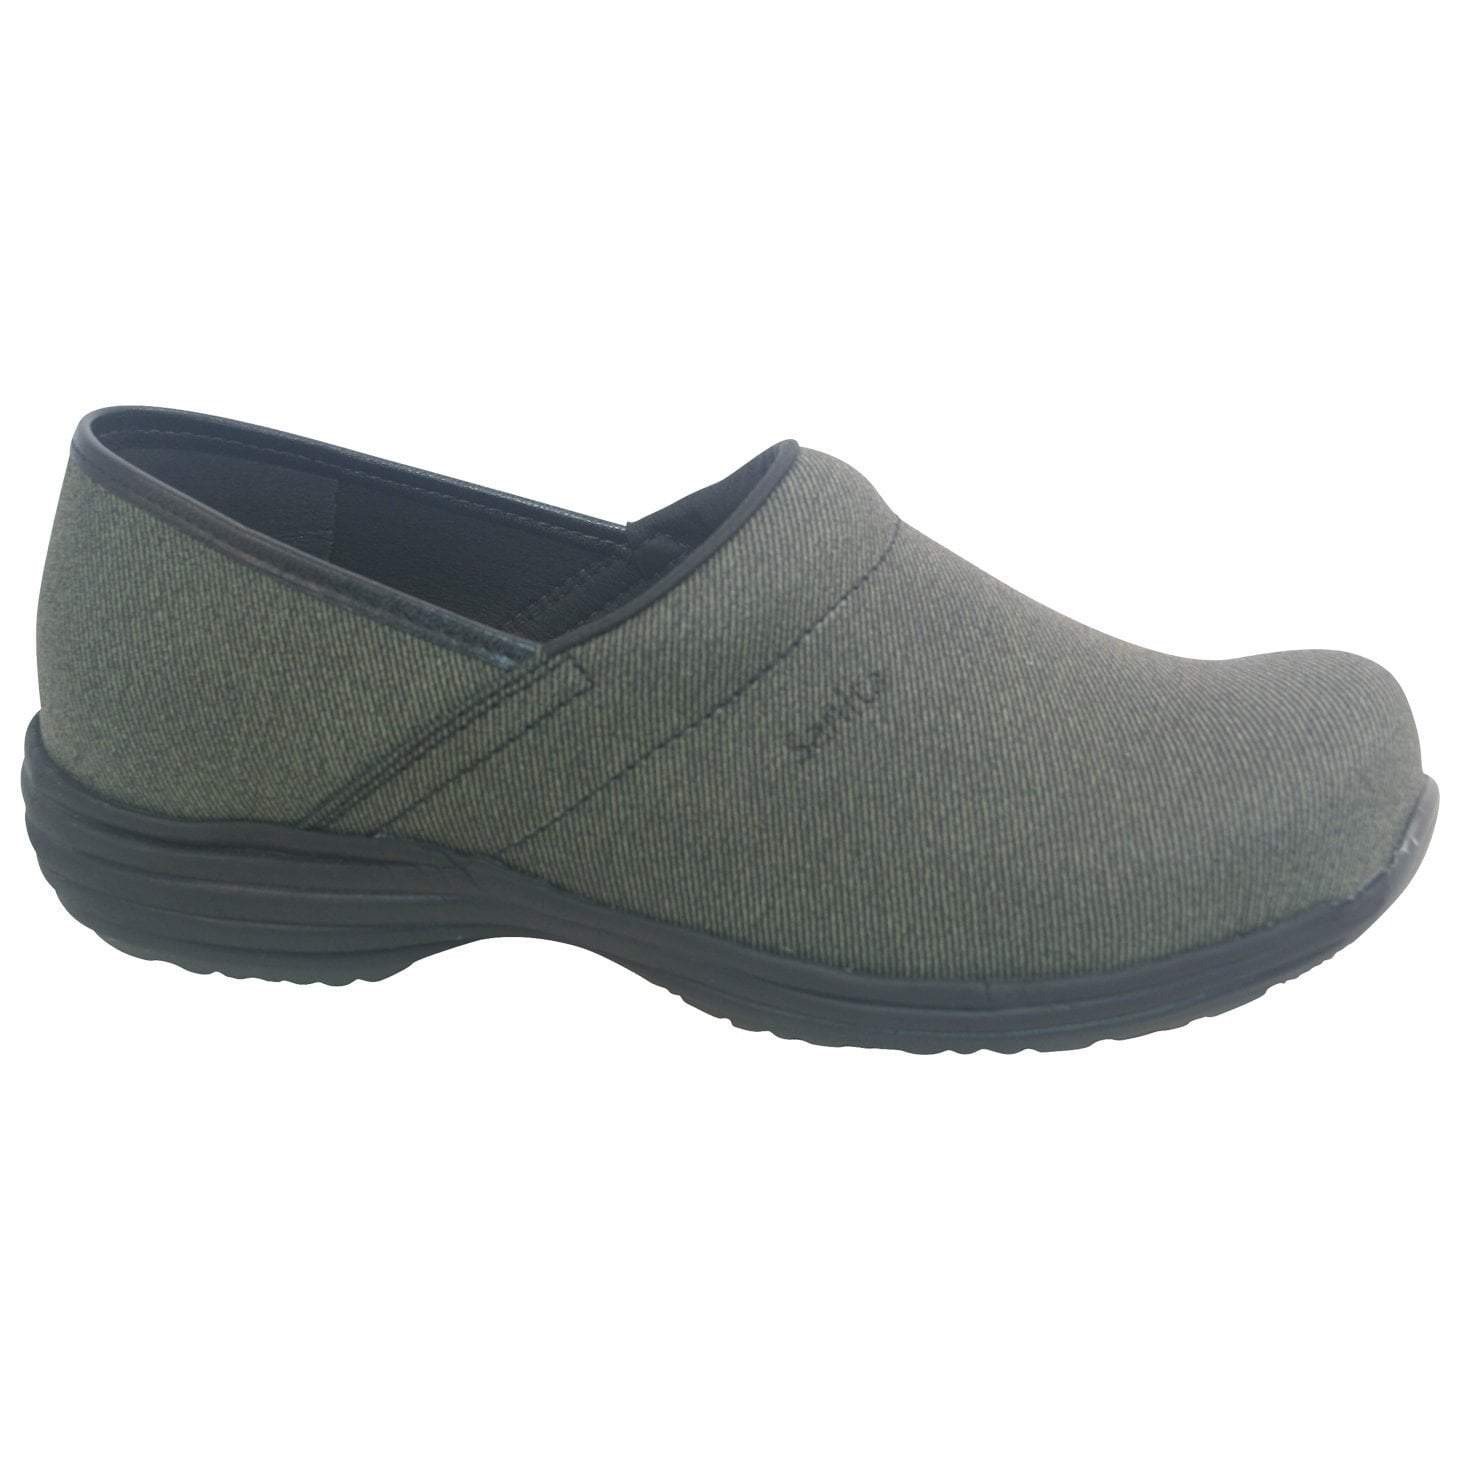 Sanita Troubador Women's Closed Back Clog